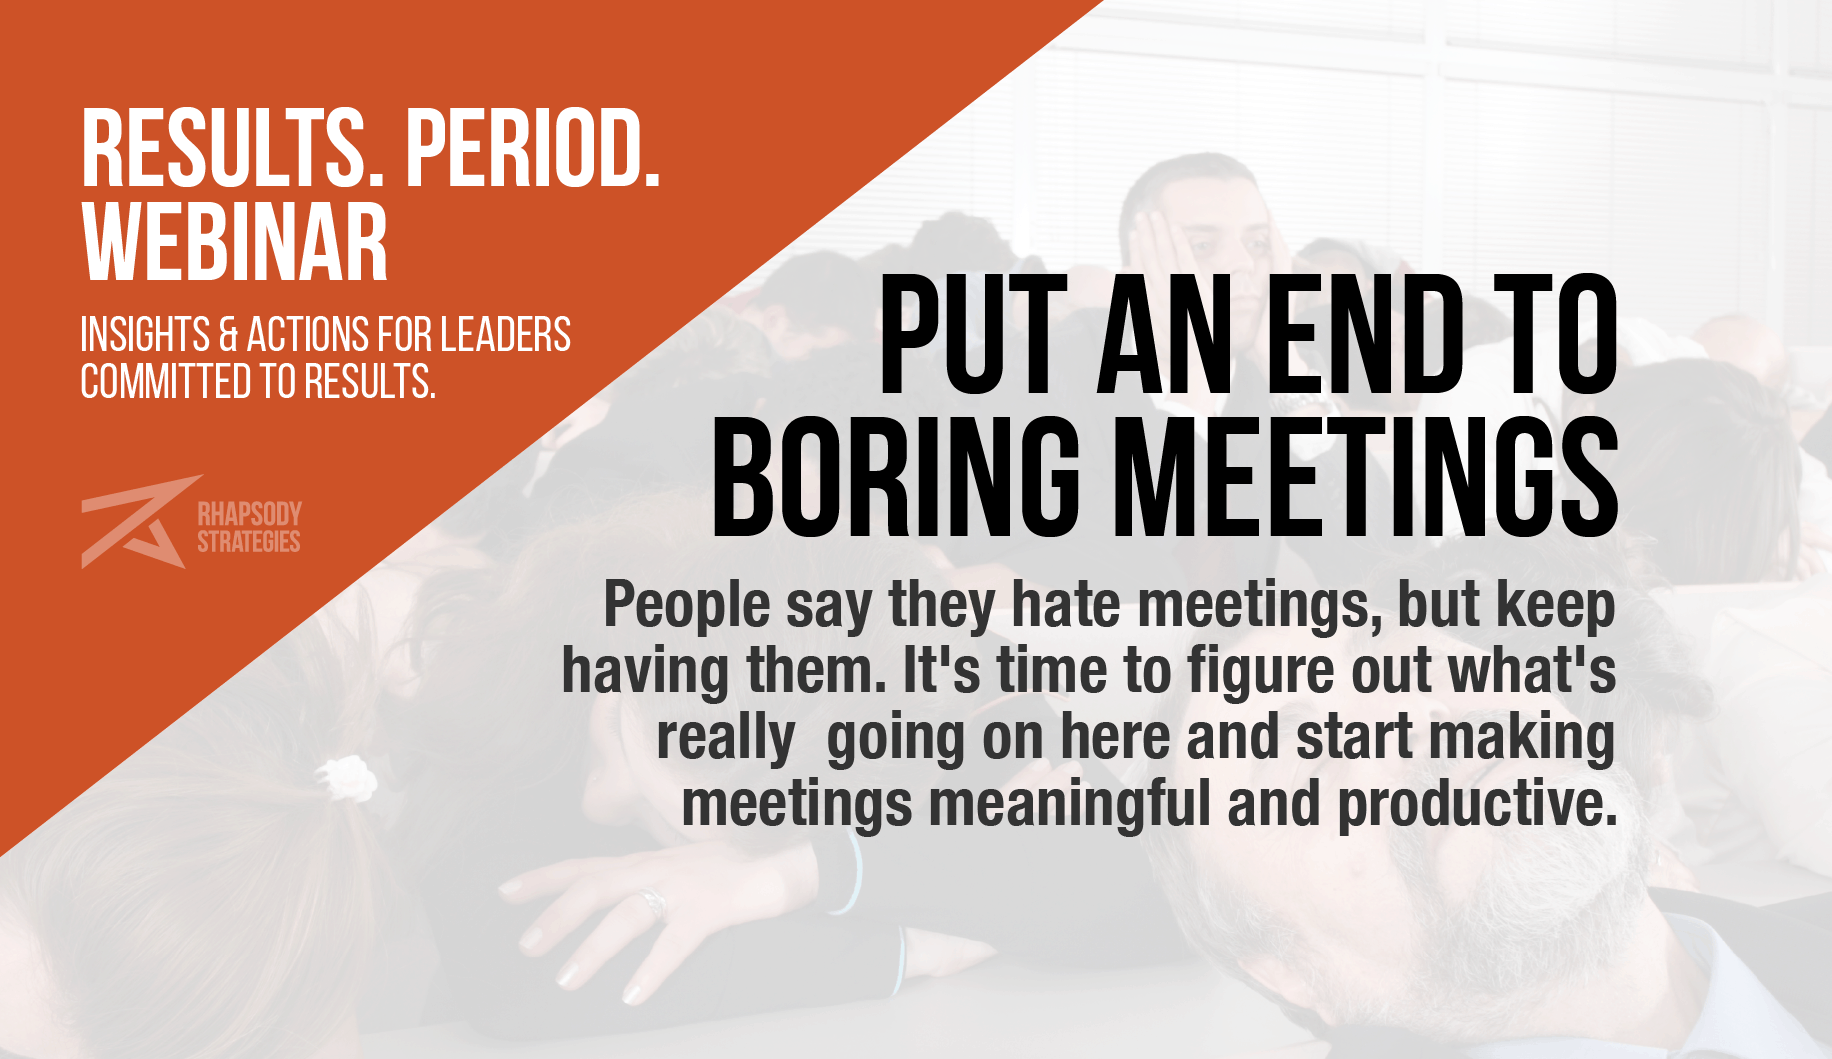 Put an End to Boring Meetings, Results. Period. Webinar, Results Period, Rhapsody Strategies, Business Coach, Business Coaching